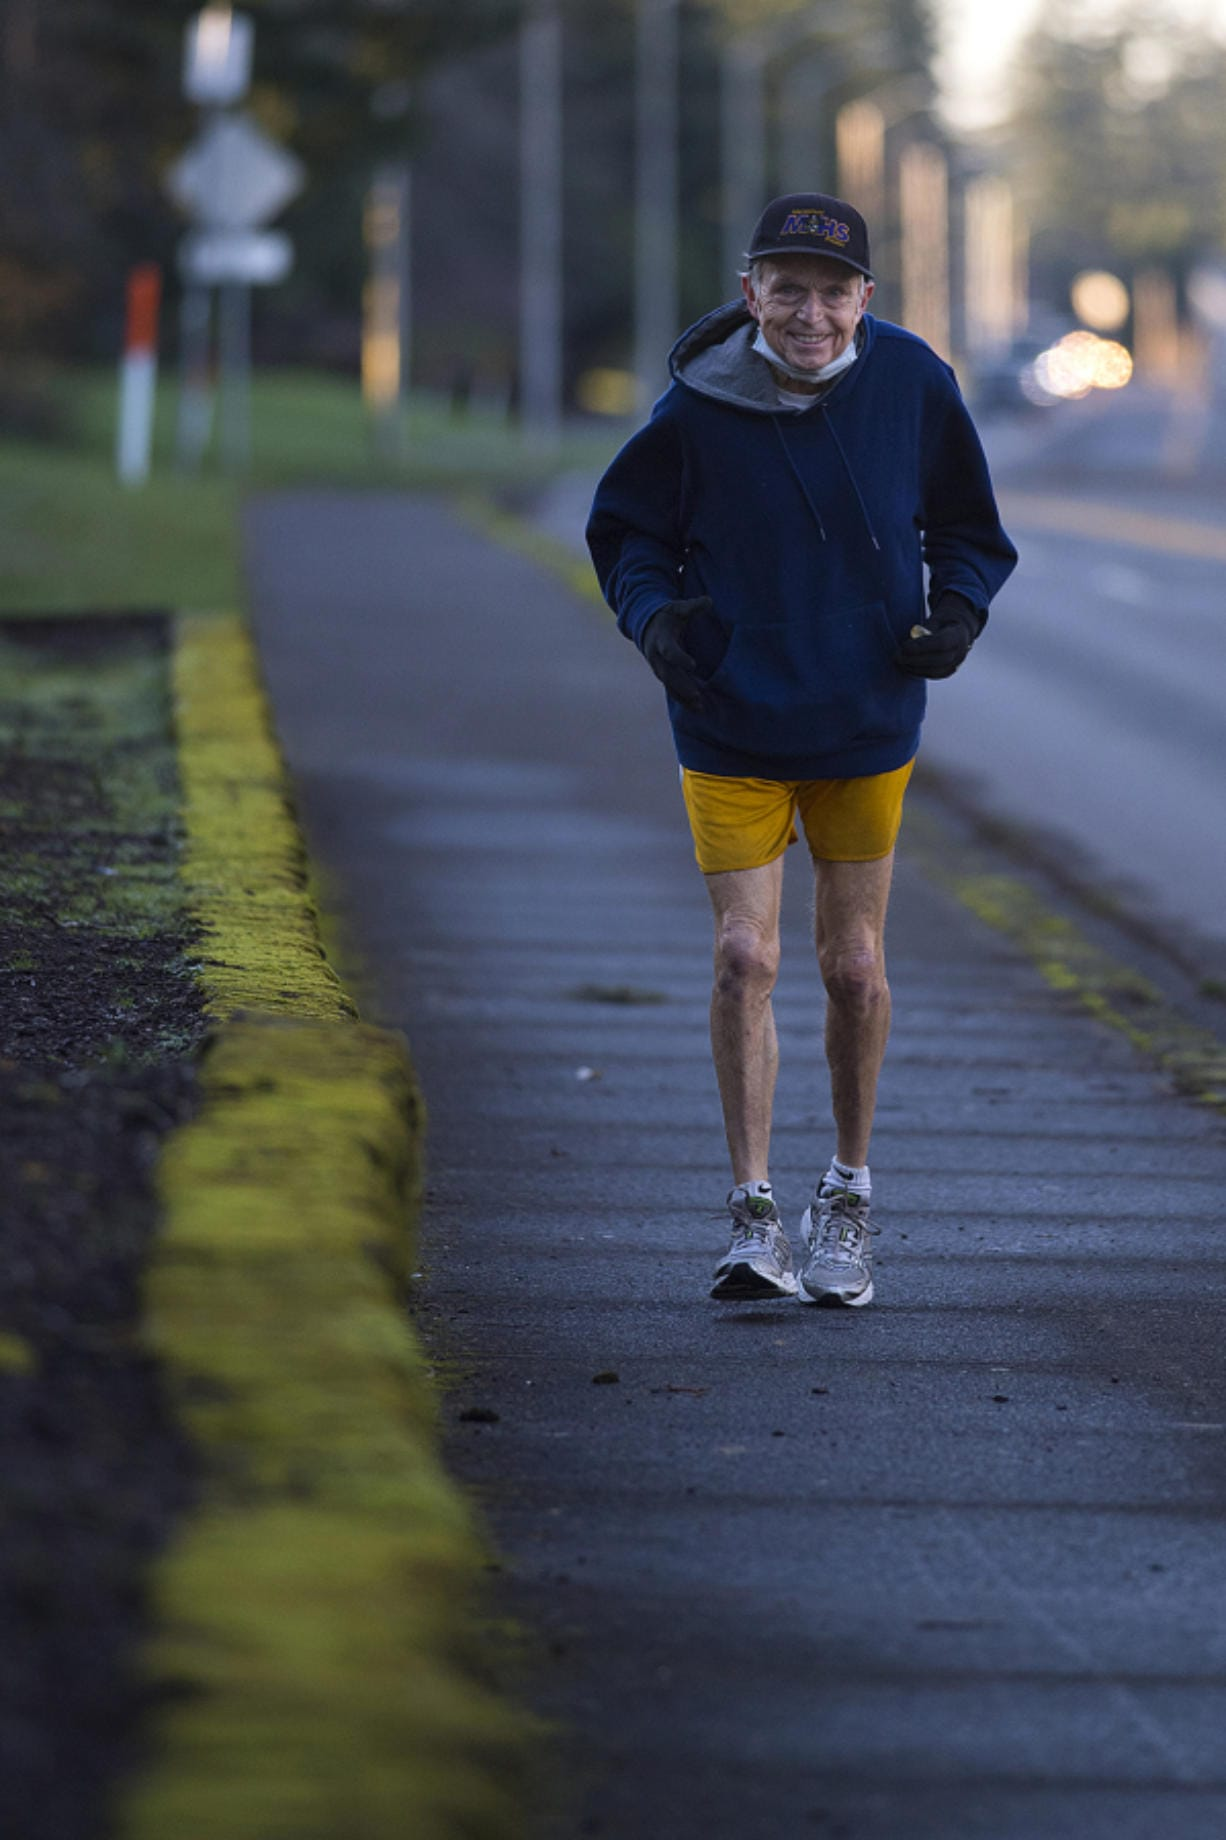 Jerry Kotsovos of Camas, pictured on his daily run Wednesday afternoon, December 23, 2020, has been running for 46 years. Now at the age of 74, he will reach a milestone of running his 130,000th mile on Christmas Day.